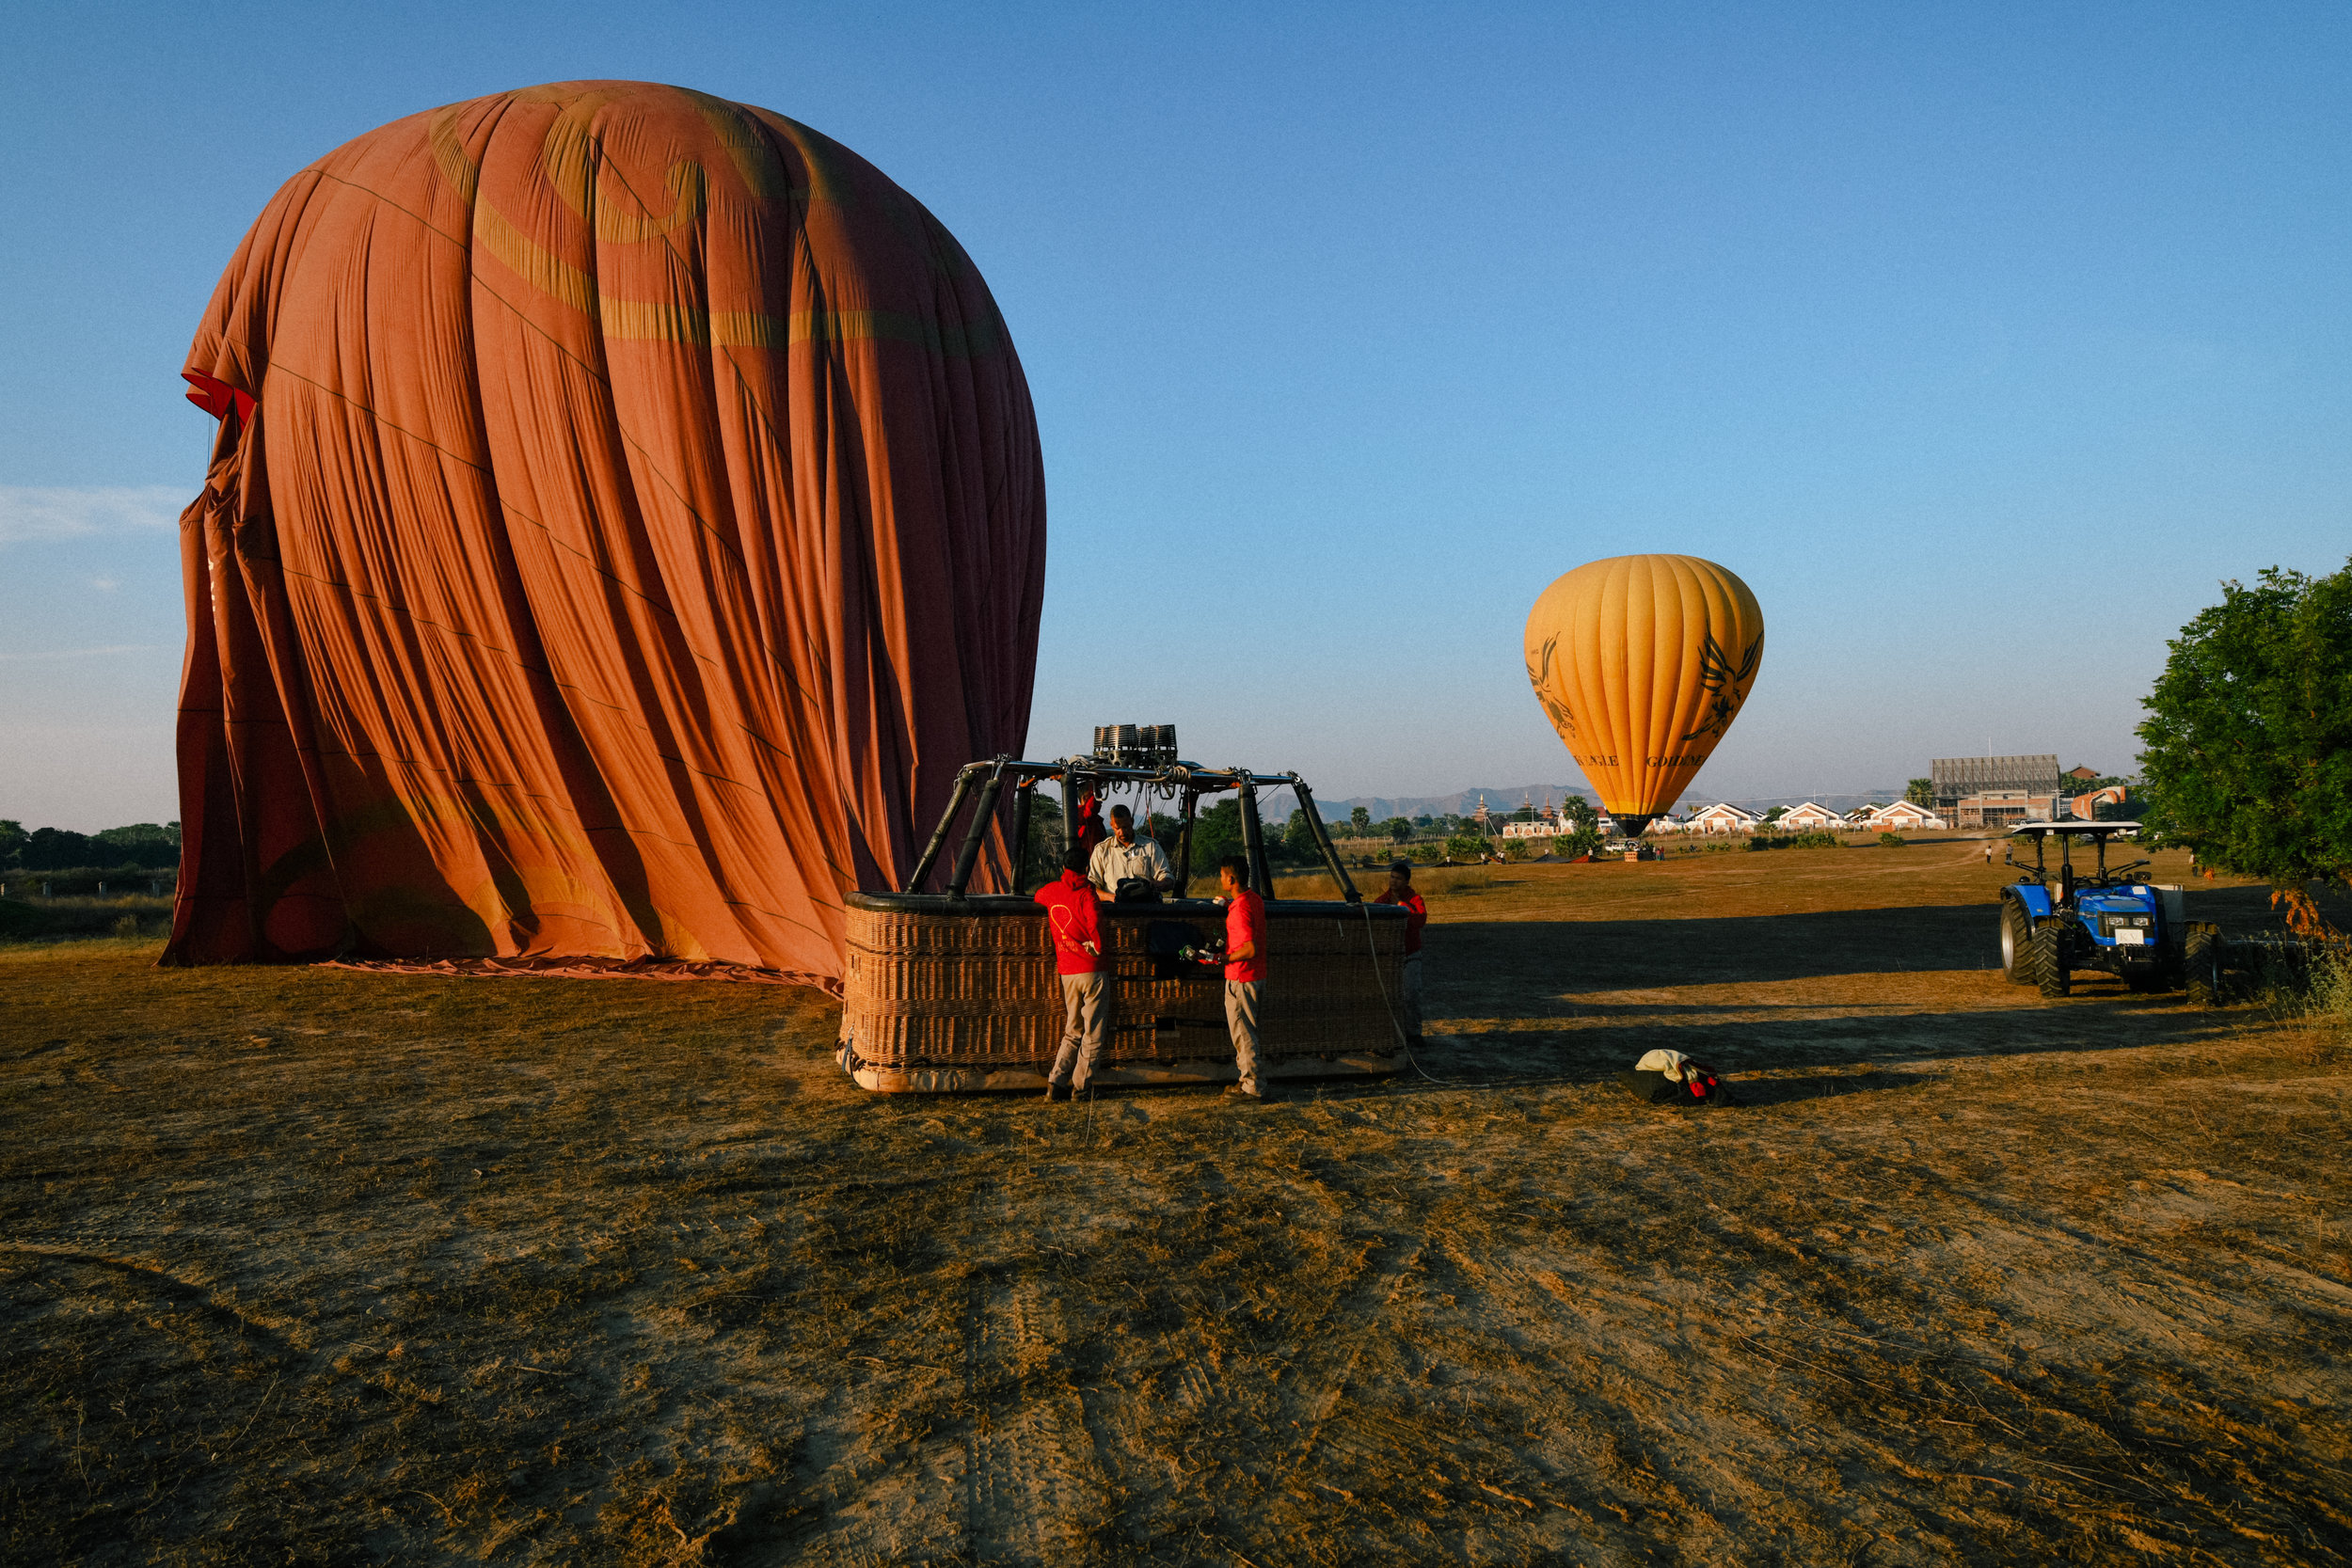 Balloons have landed